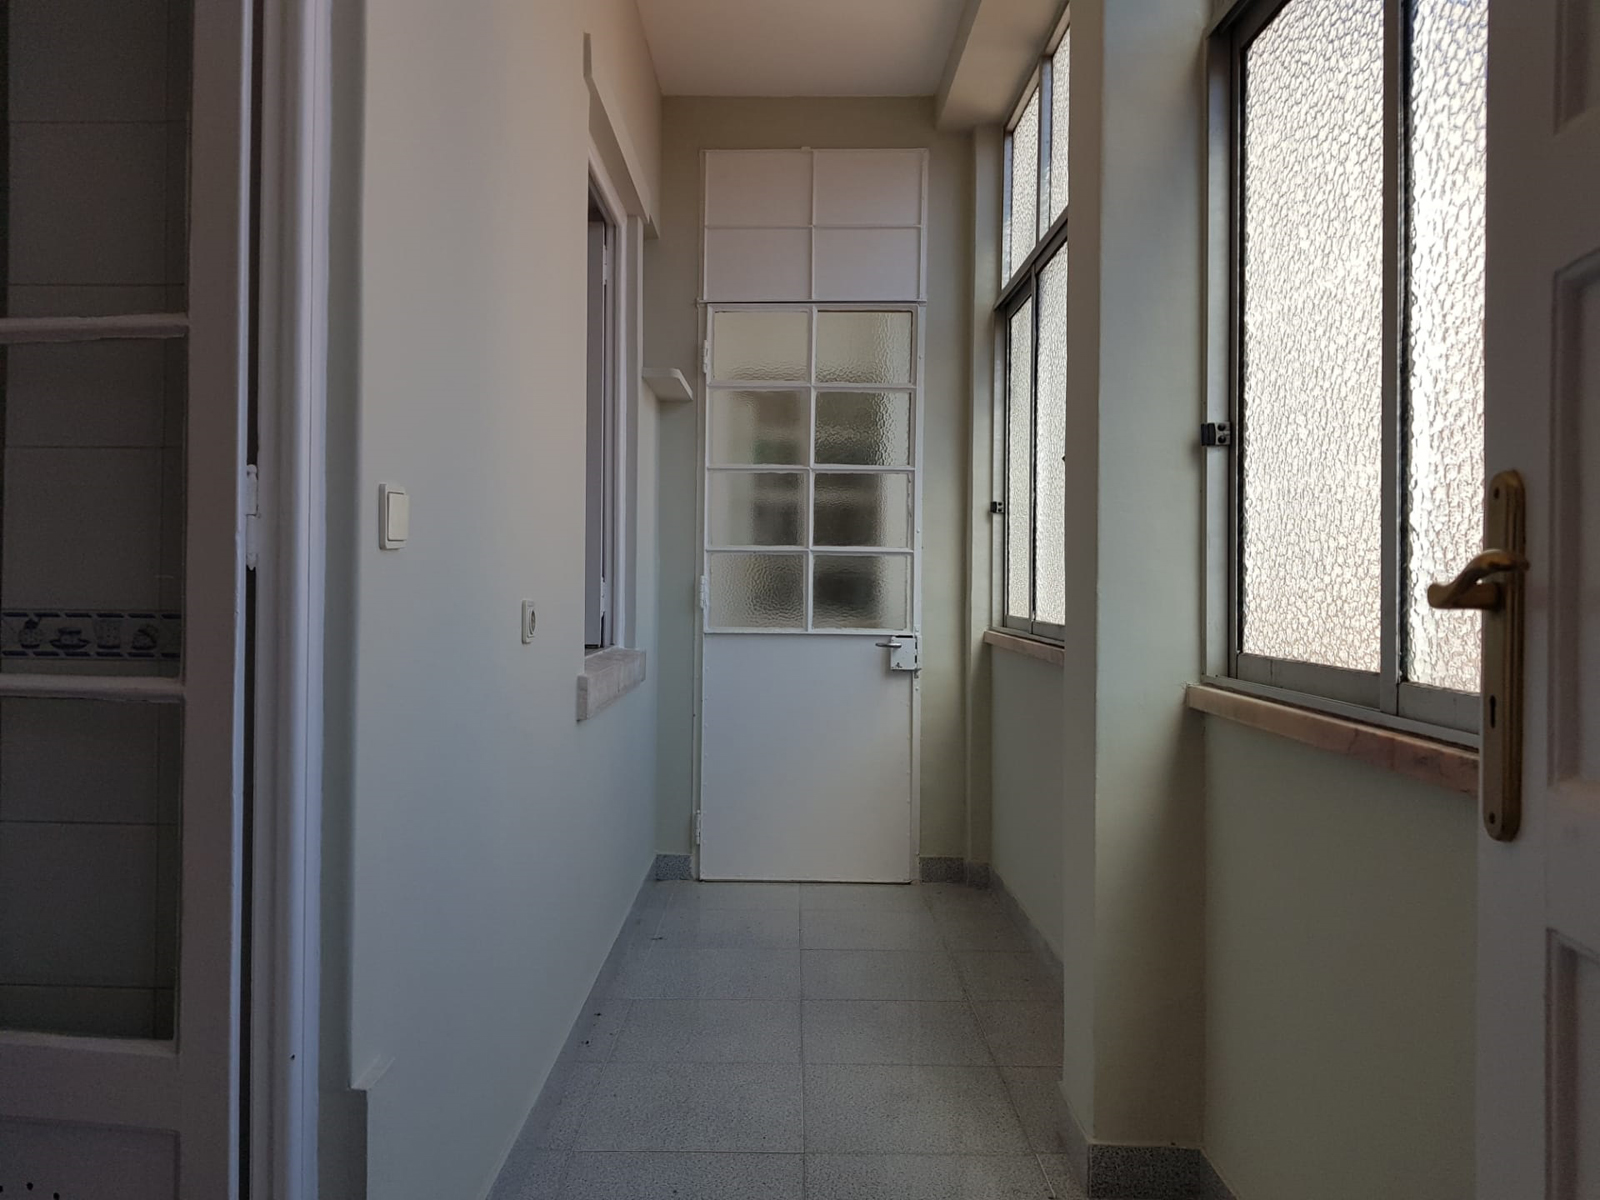 T3-Areeiro-Bairro dos actors totally refurbished.